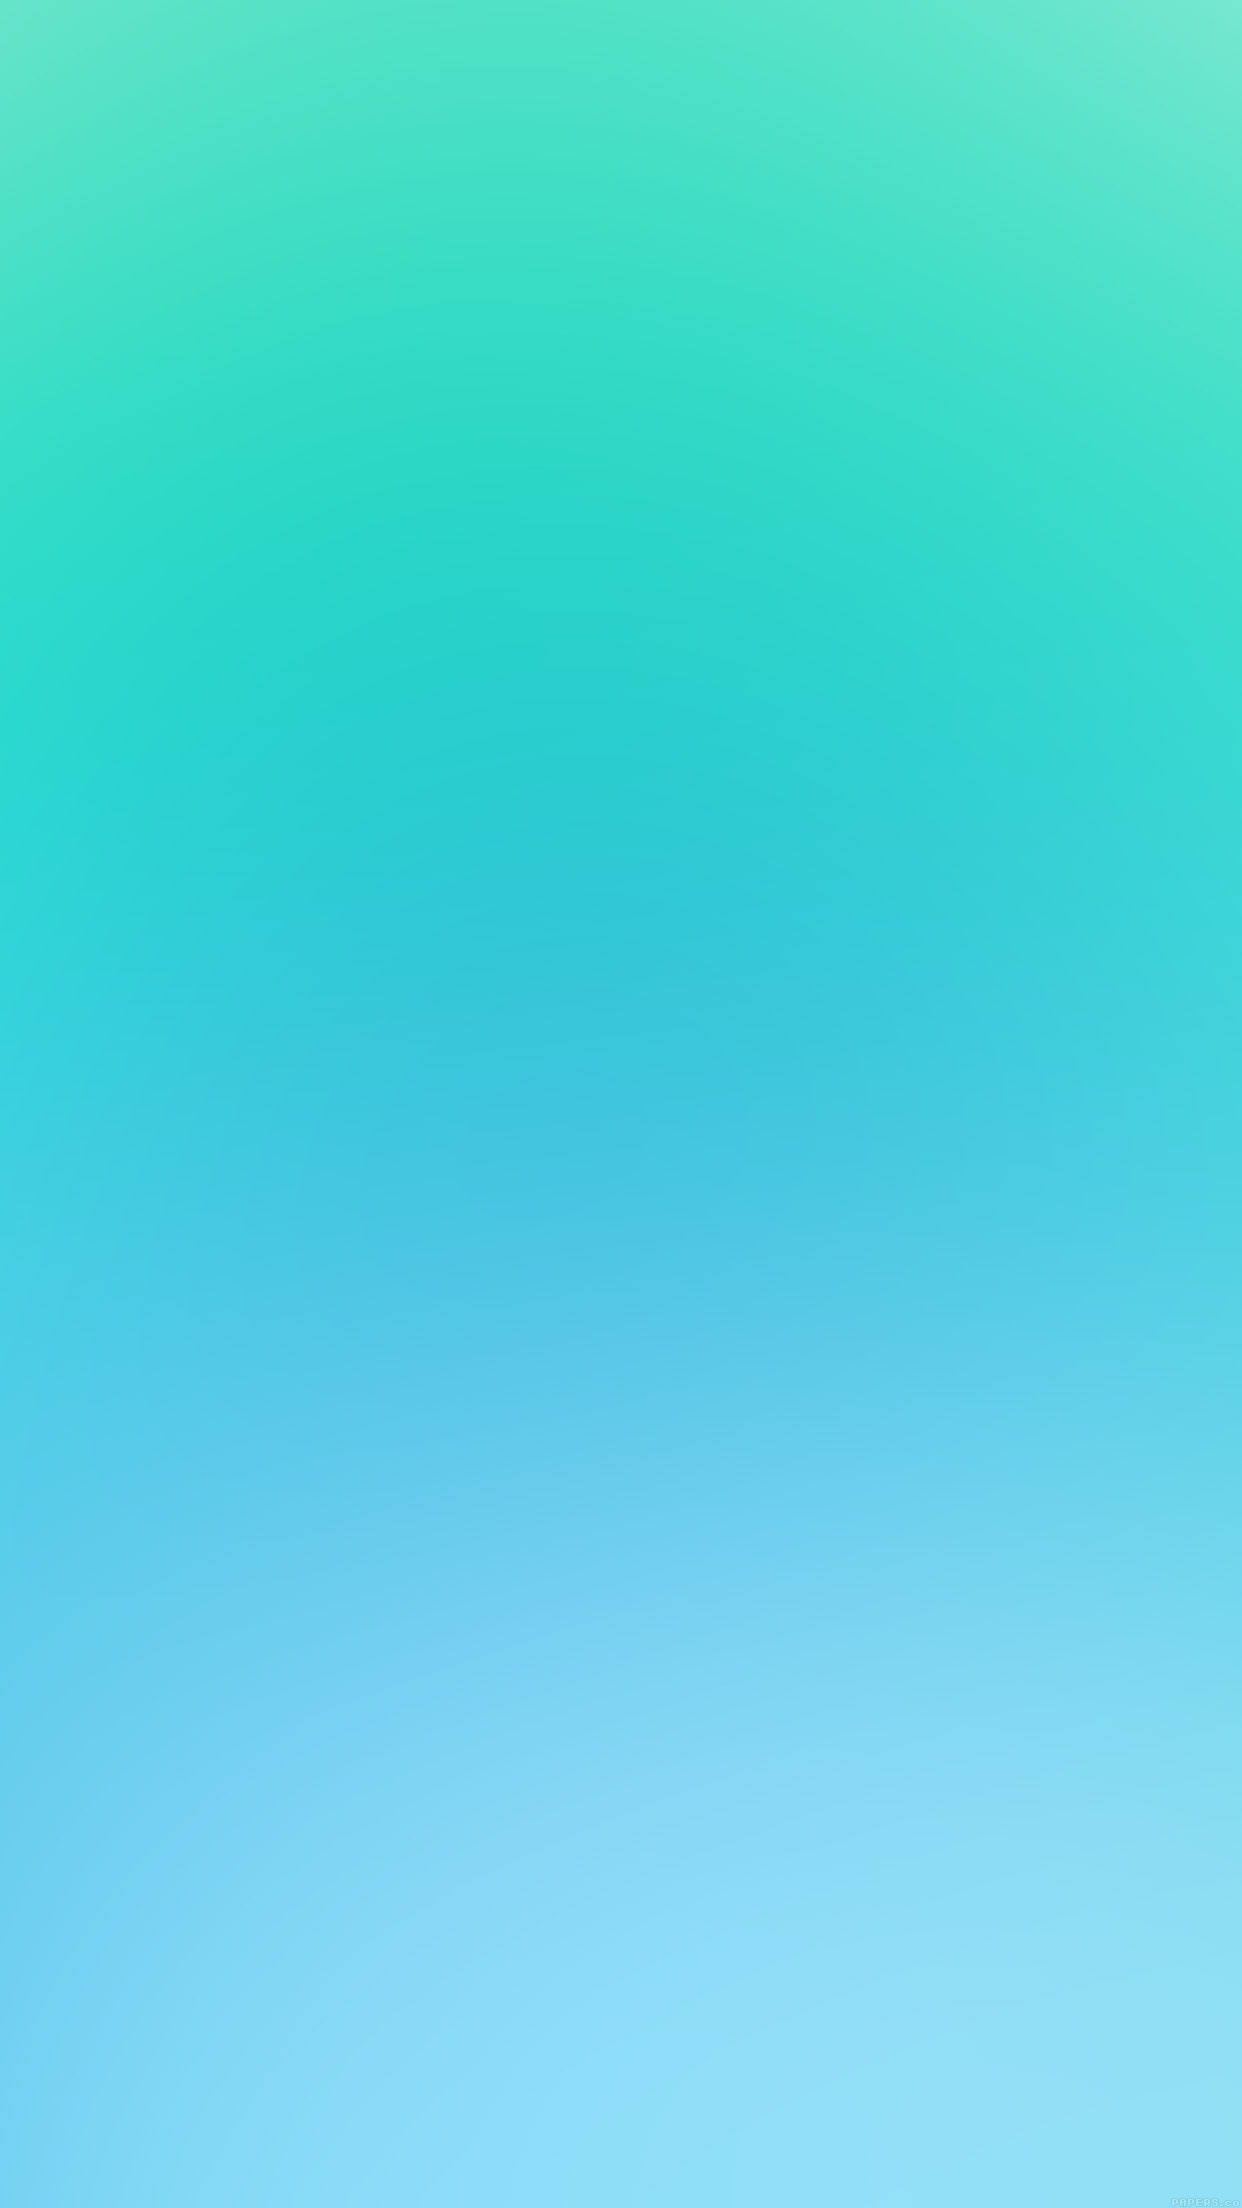 Plain White Wallpaper Iphone X For Iphone X Iphonexpapers